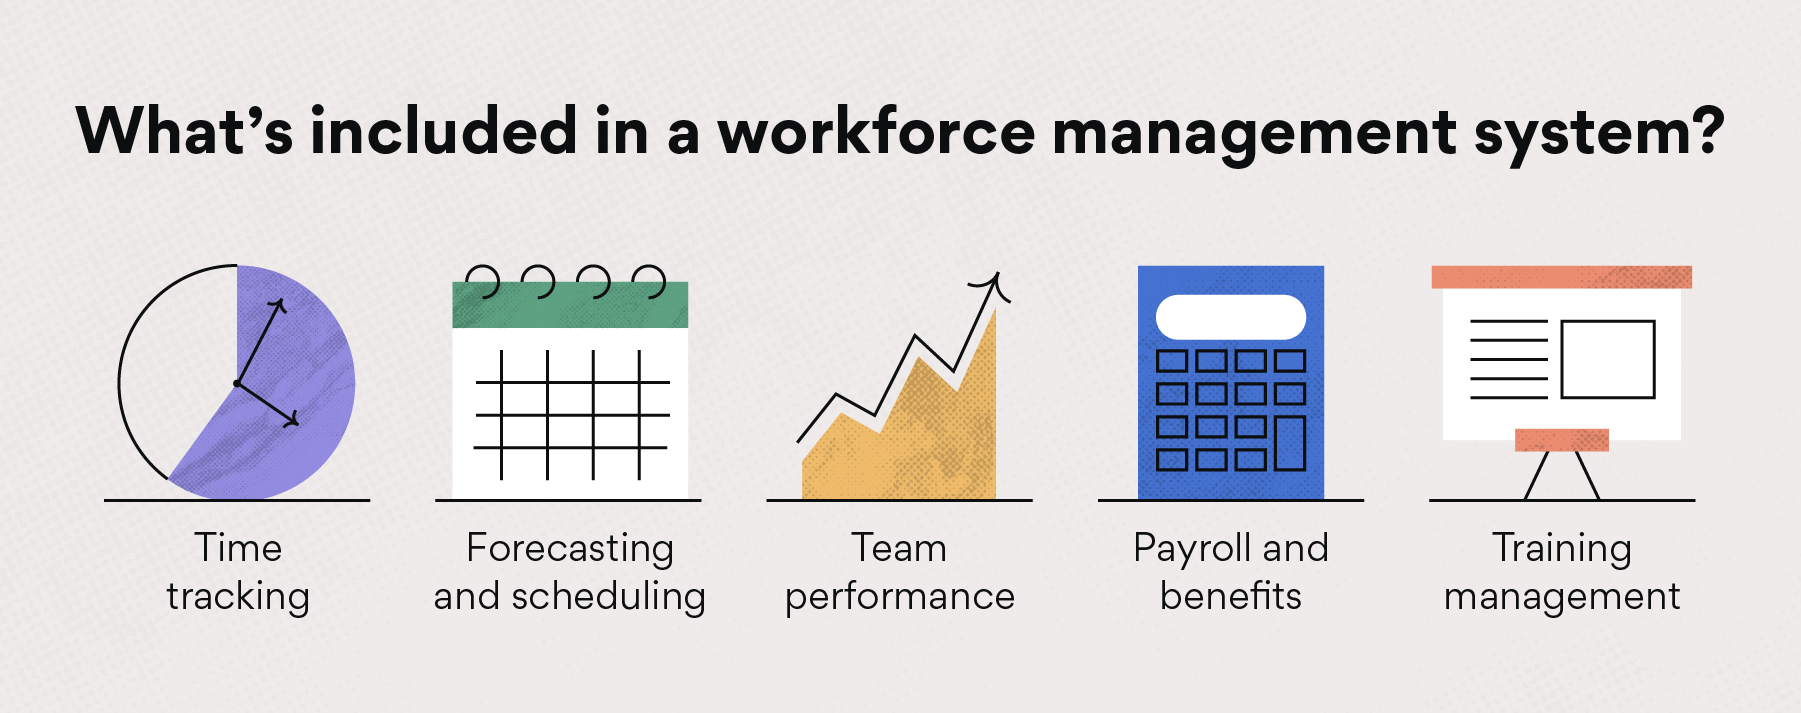 What's included in a workforce management system?